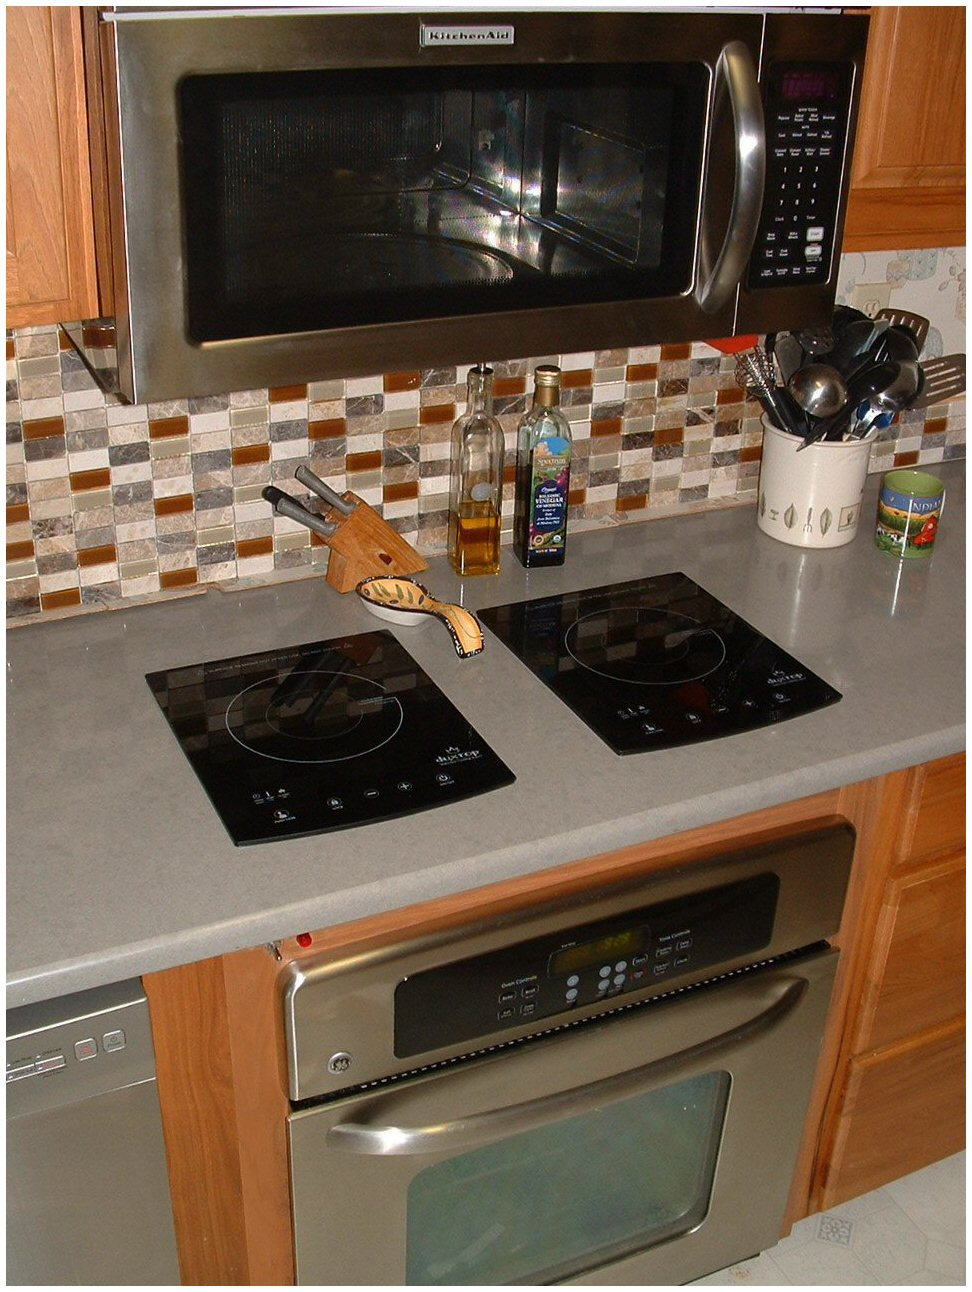 Induction Cooktop Using Duxtop 8300 Units